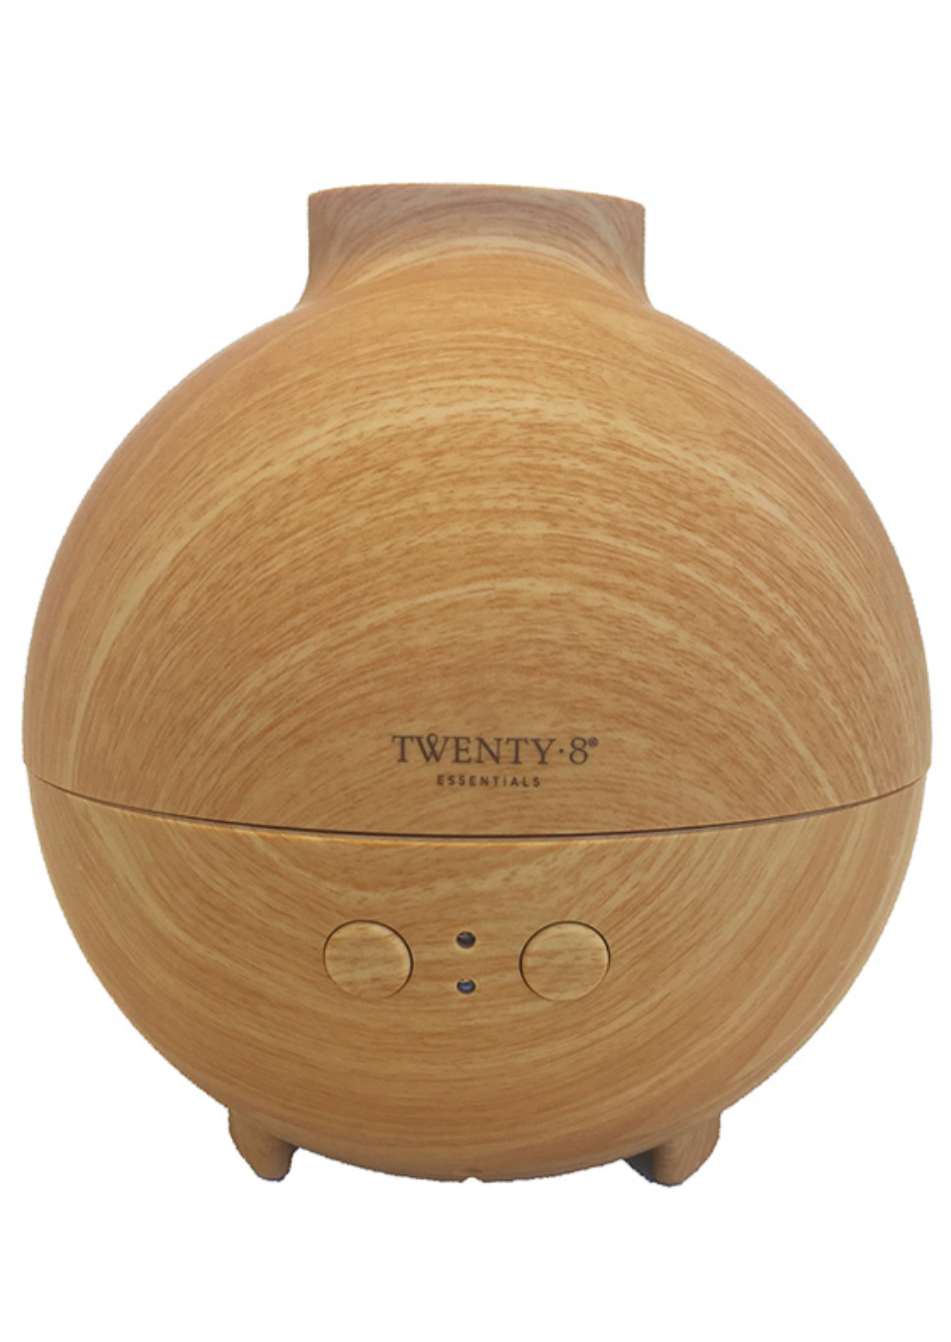 Twenty8 Signature Ultrasonic Diffuser  The Twenty8 Signature Diffuser has an elegant bamboo veneer finish and refined minimalist appearance giving it a modern style and look to suit any room.  It operates in a powerful yet subtle way with just 8-10 drops of pure essential oils needed in 600ml of water, giving it 12-24hours of continuous cool mist.   An effective way to create an aroma that calms the mind and enhances the mood. The ultrasonic technology utilises high frequency vibrations to atomise the liqui